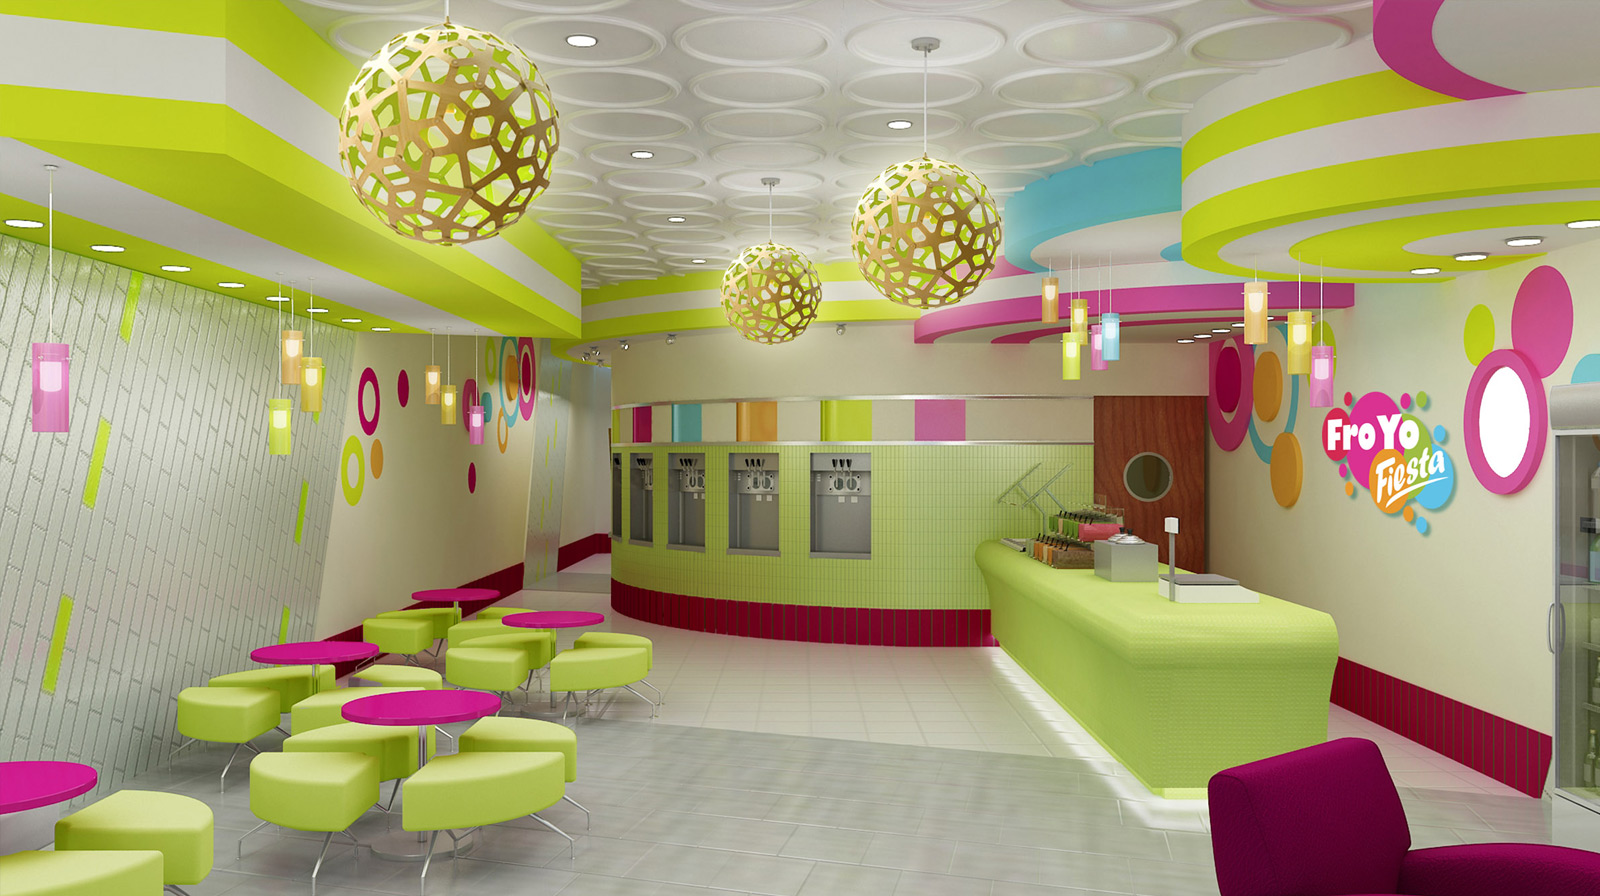 Interior design of yogurt shops mindful design consulting - Enterear design ...